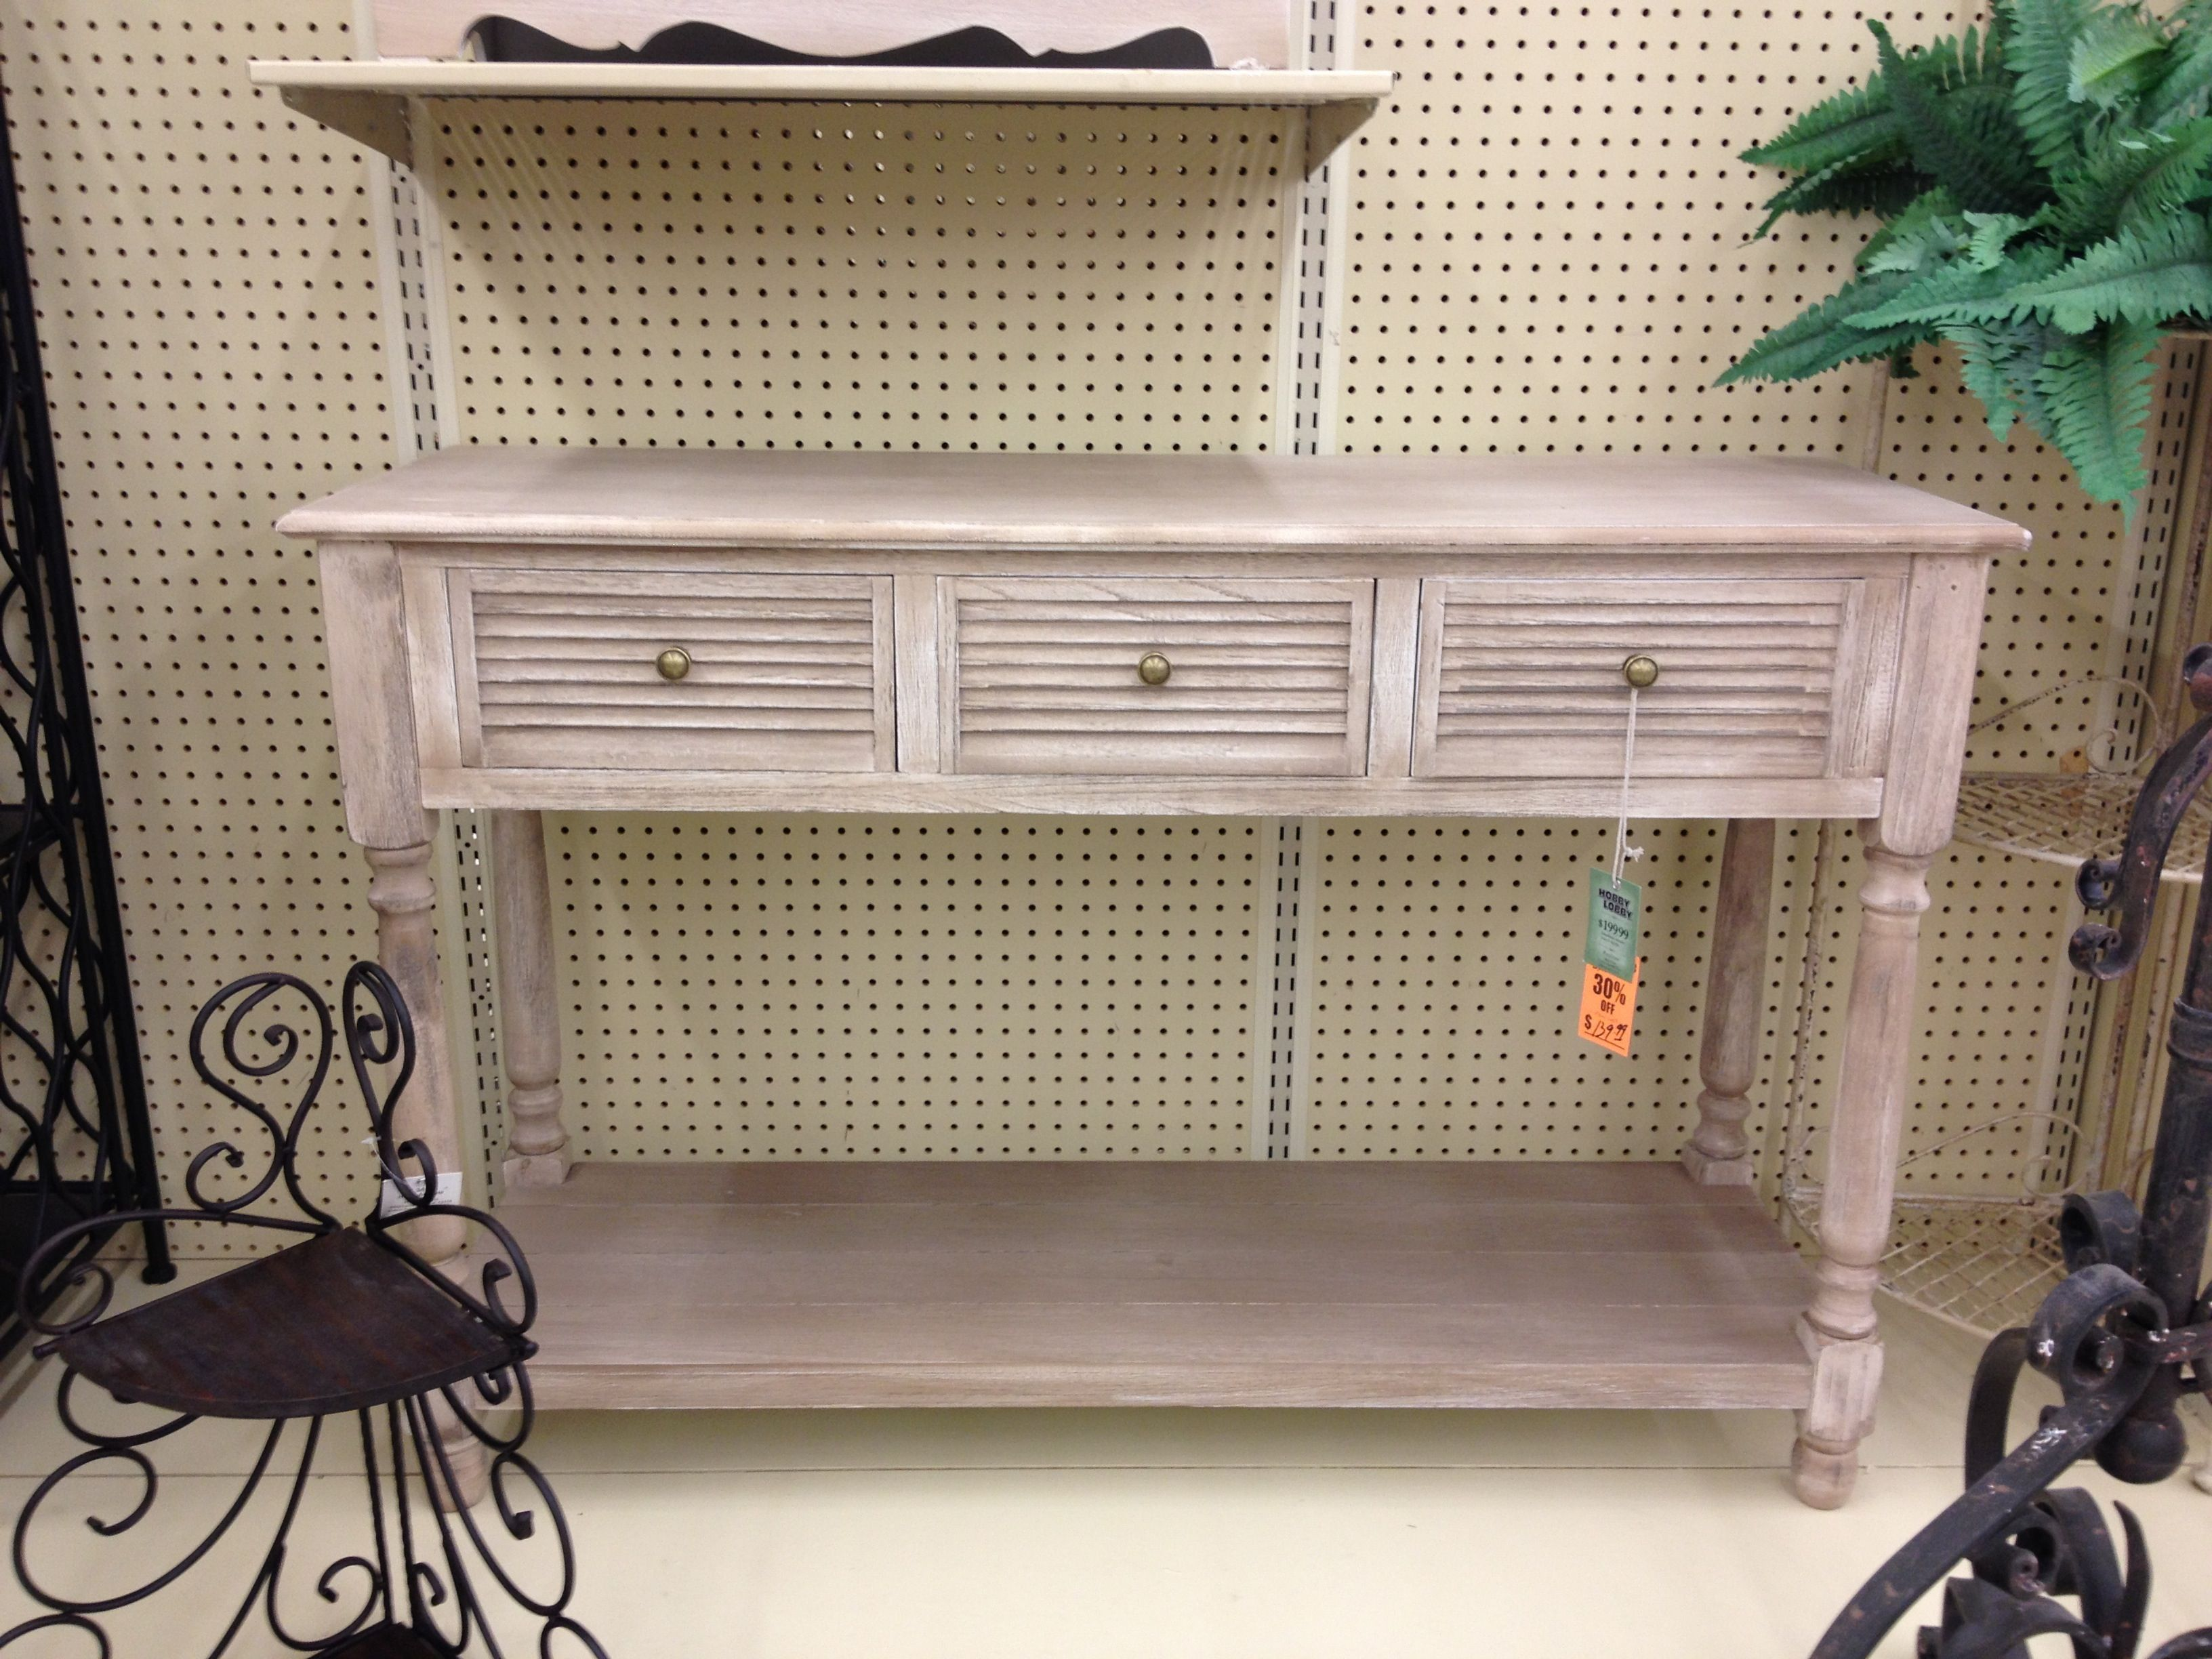 Pair of console tables $200 each on sale for $140 each hobby lobby